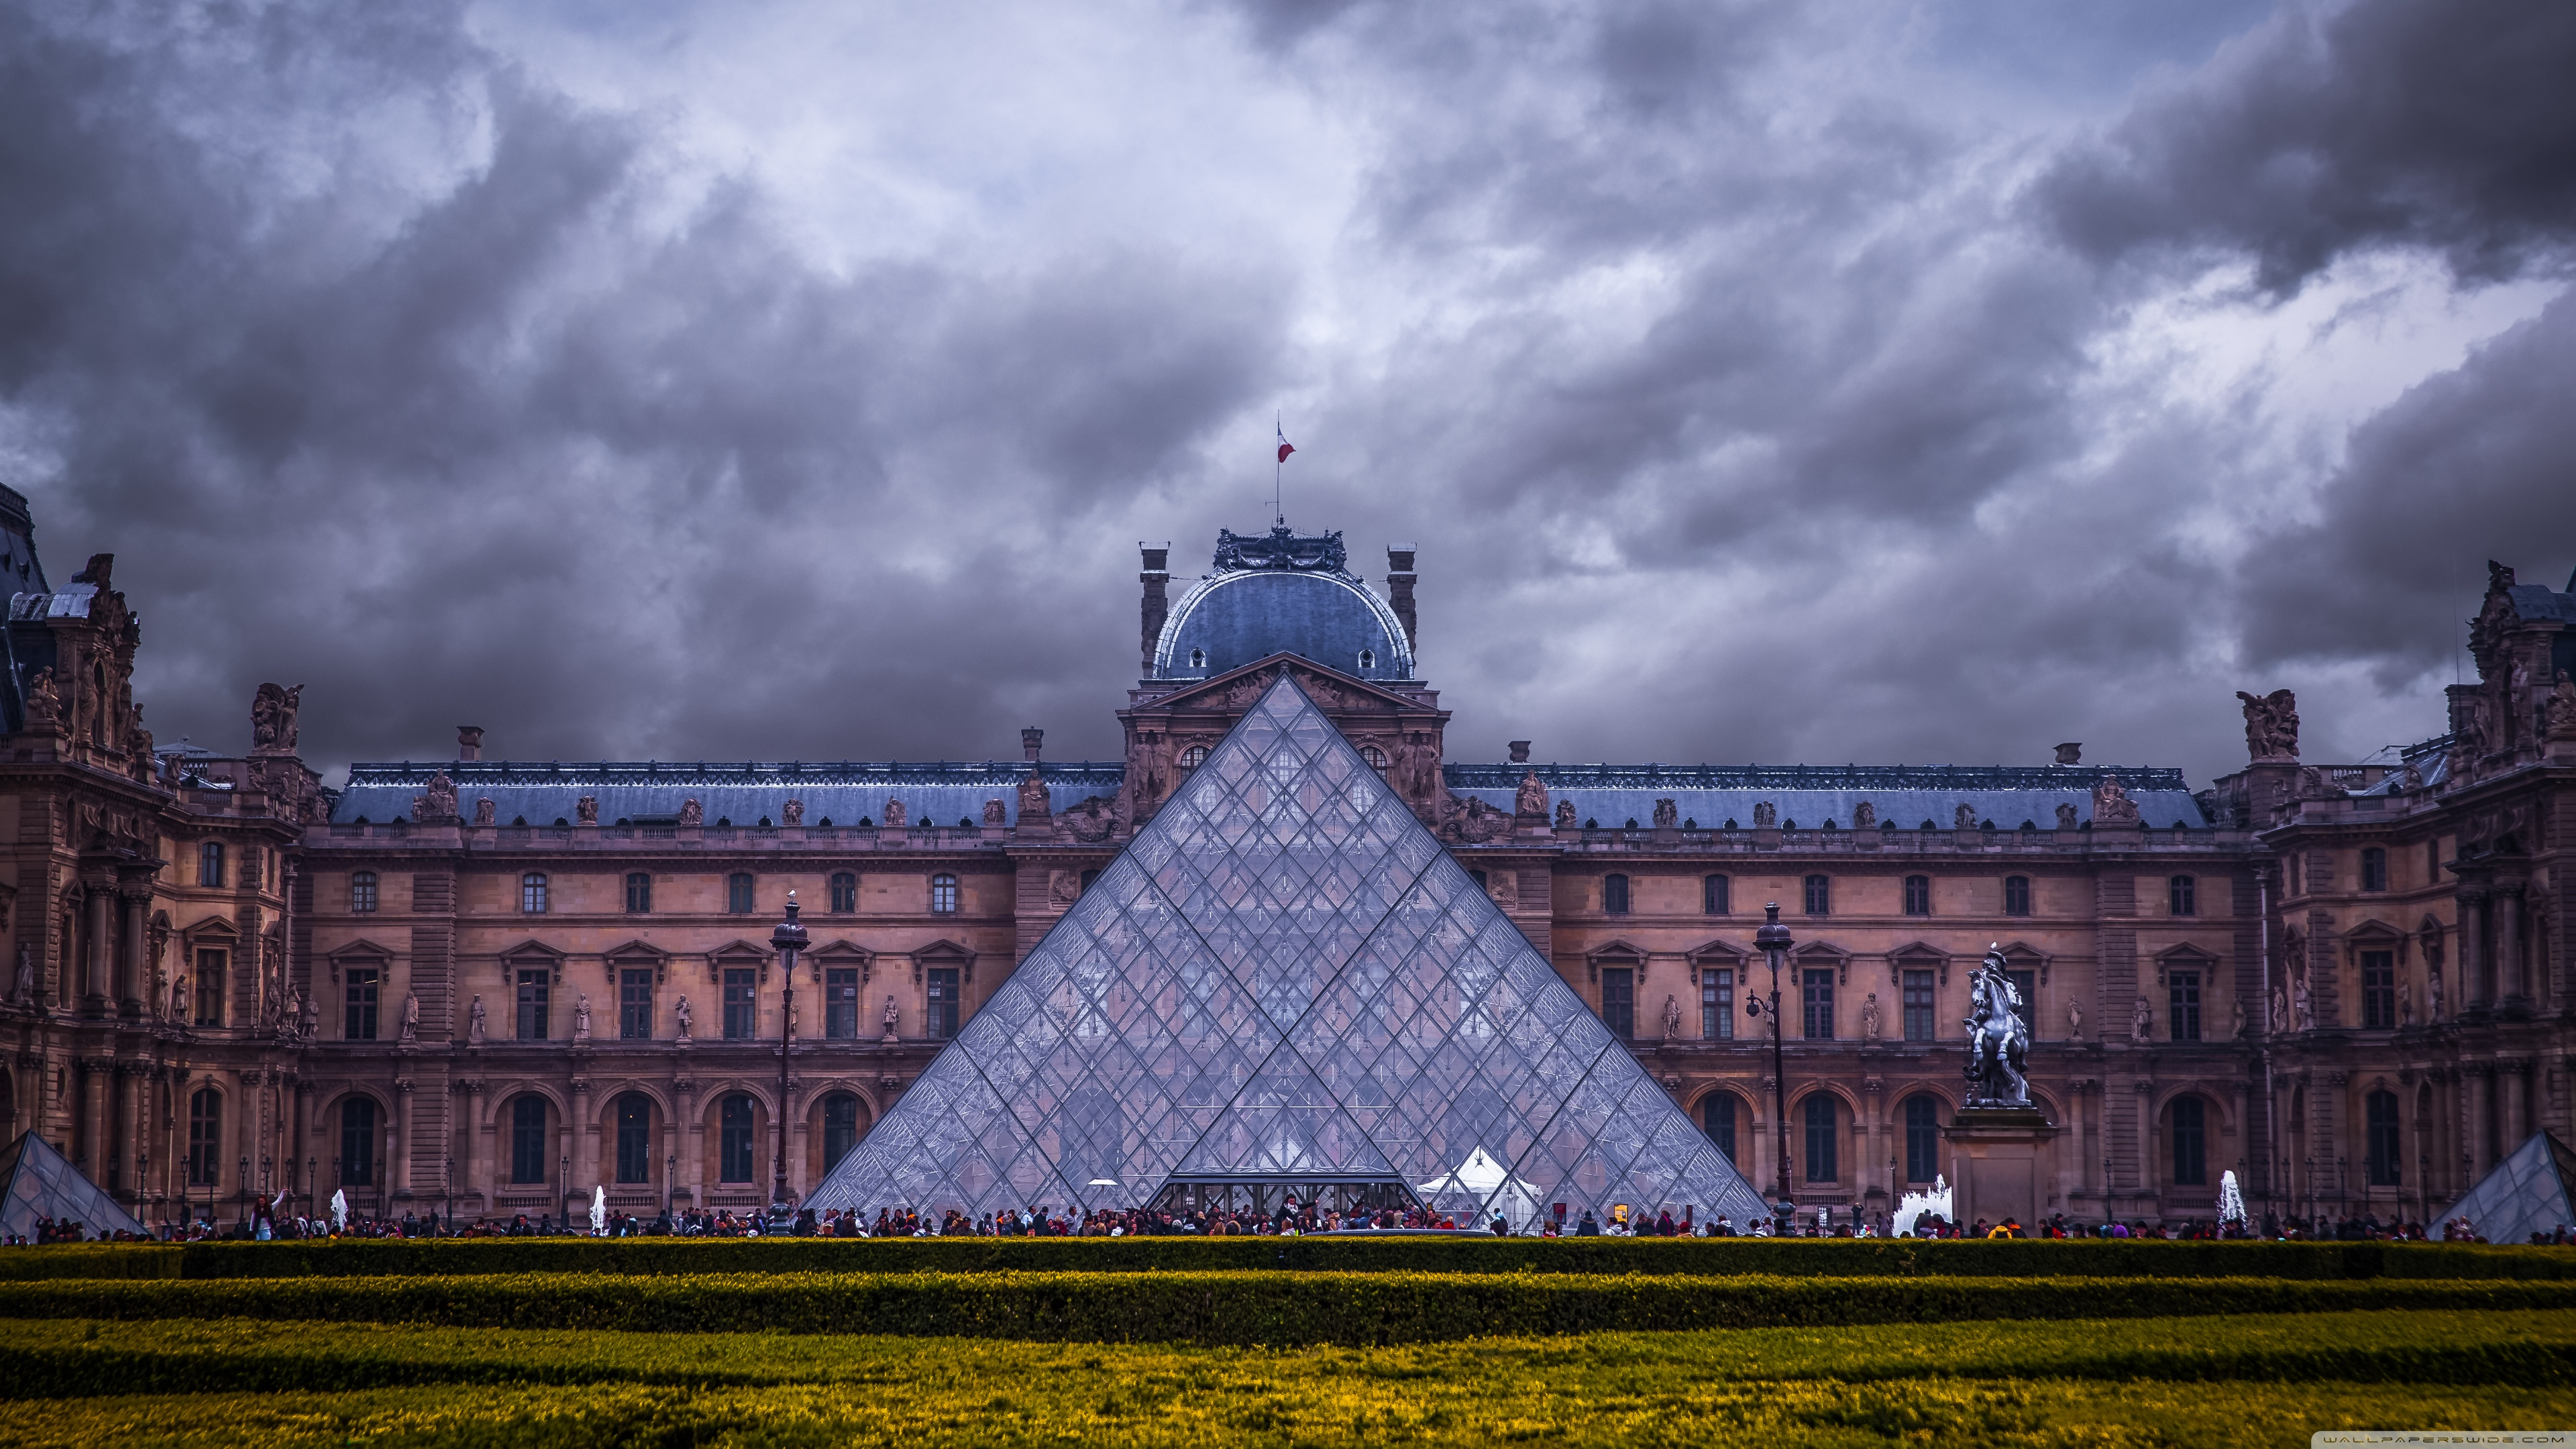 Louvre Museum Paris France 4K HD Desktop Wallpaper for 4K 3840x2160